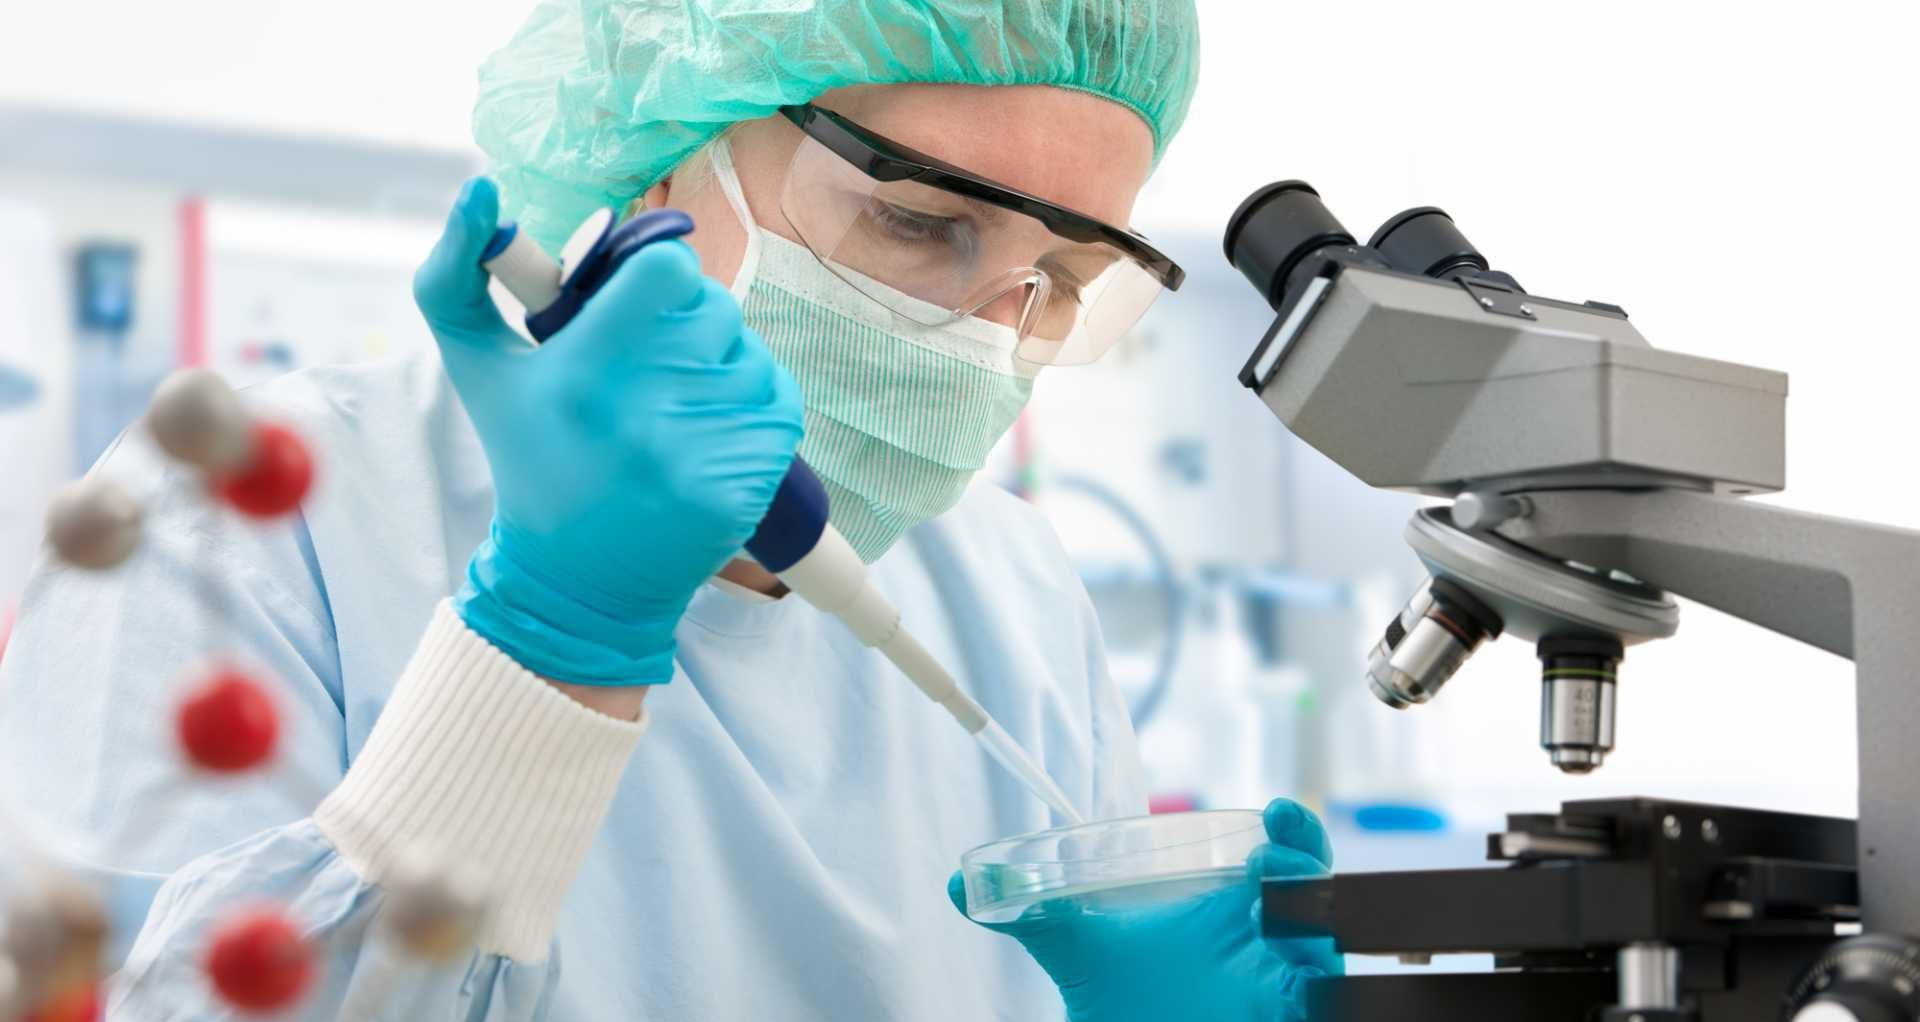 health clusters pharmaceutical research medical healthcare - image courtesy of Shutterstock